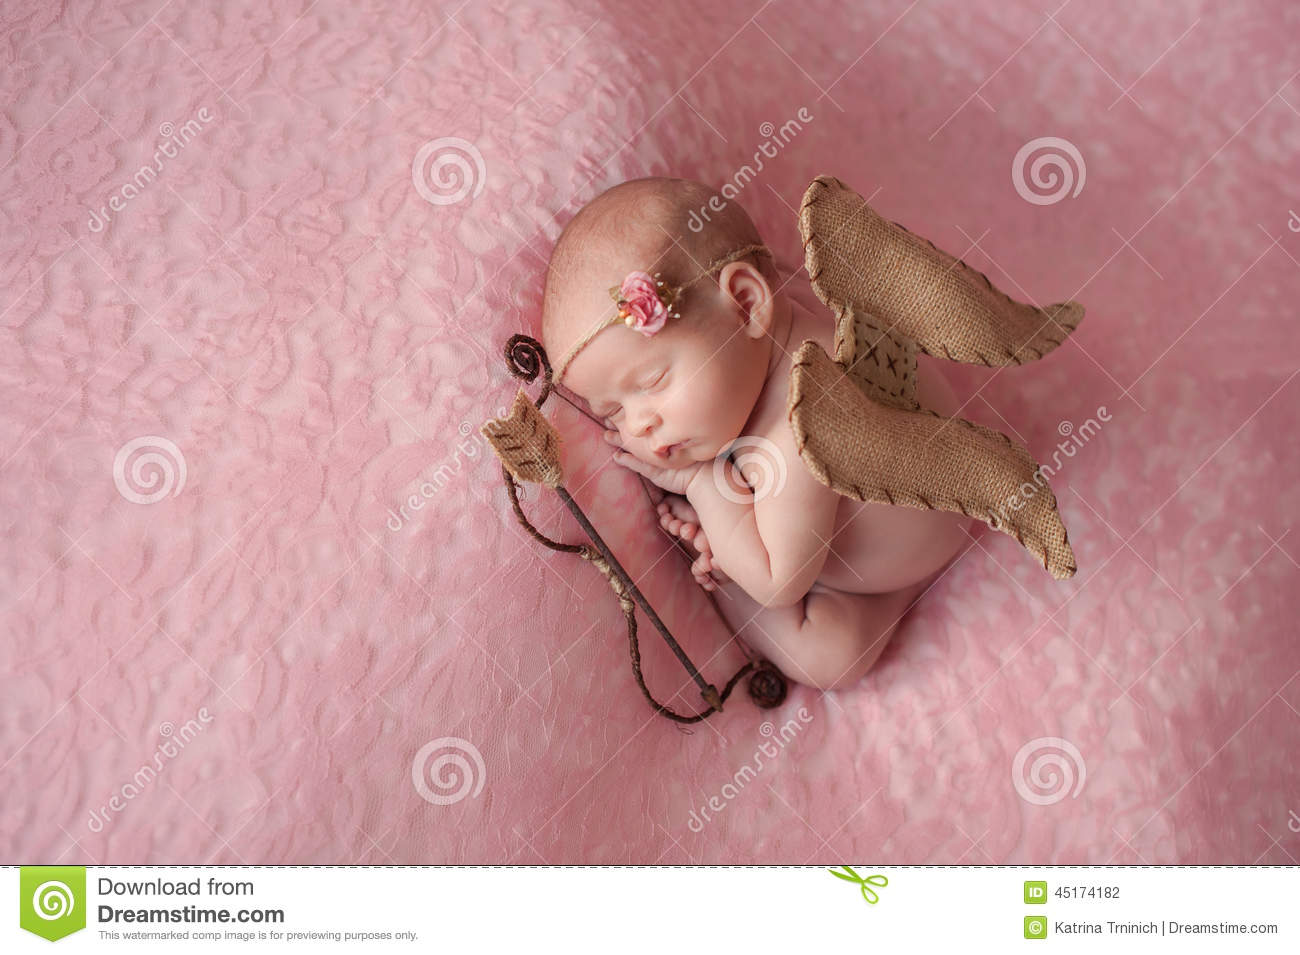 Newborn Baby Girl Wearing Cupid Wings Stock Photo  Image. Website Design Software Open Source. Sierra Motors San Antonio Carpet Charlotte Nc. Travel Sales Consultant Best Moving Van Lines. Monte Carlo Las Vegas Airport Shuttle. Executive Suites Minneapolis. Online Health Science Degree. Mattress Sealy Posturepedic Reviews. Training For Sales Managers Best Travel Visa